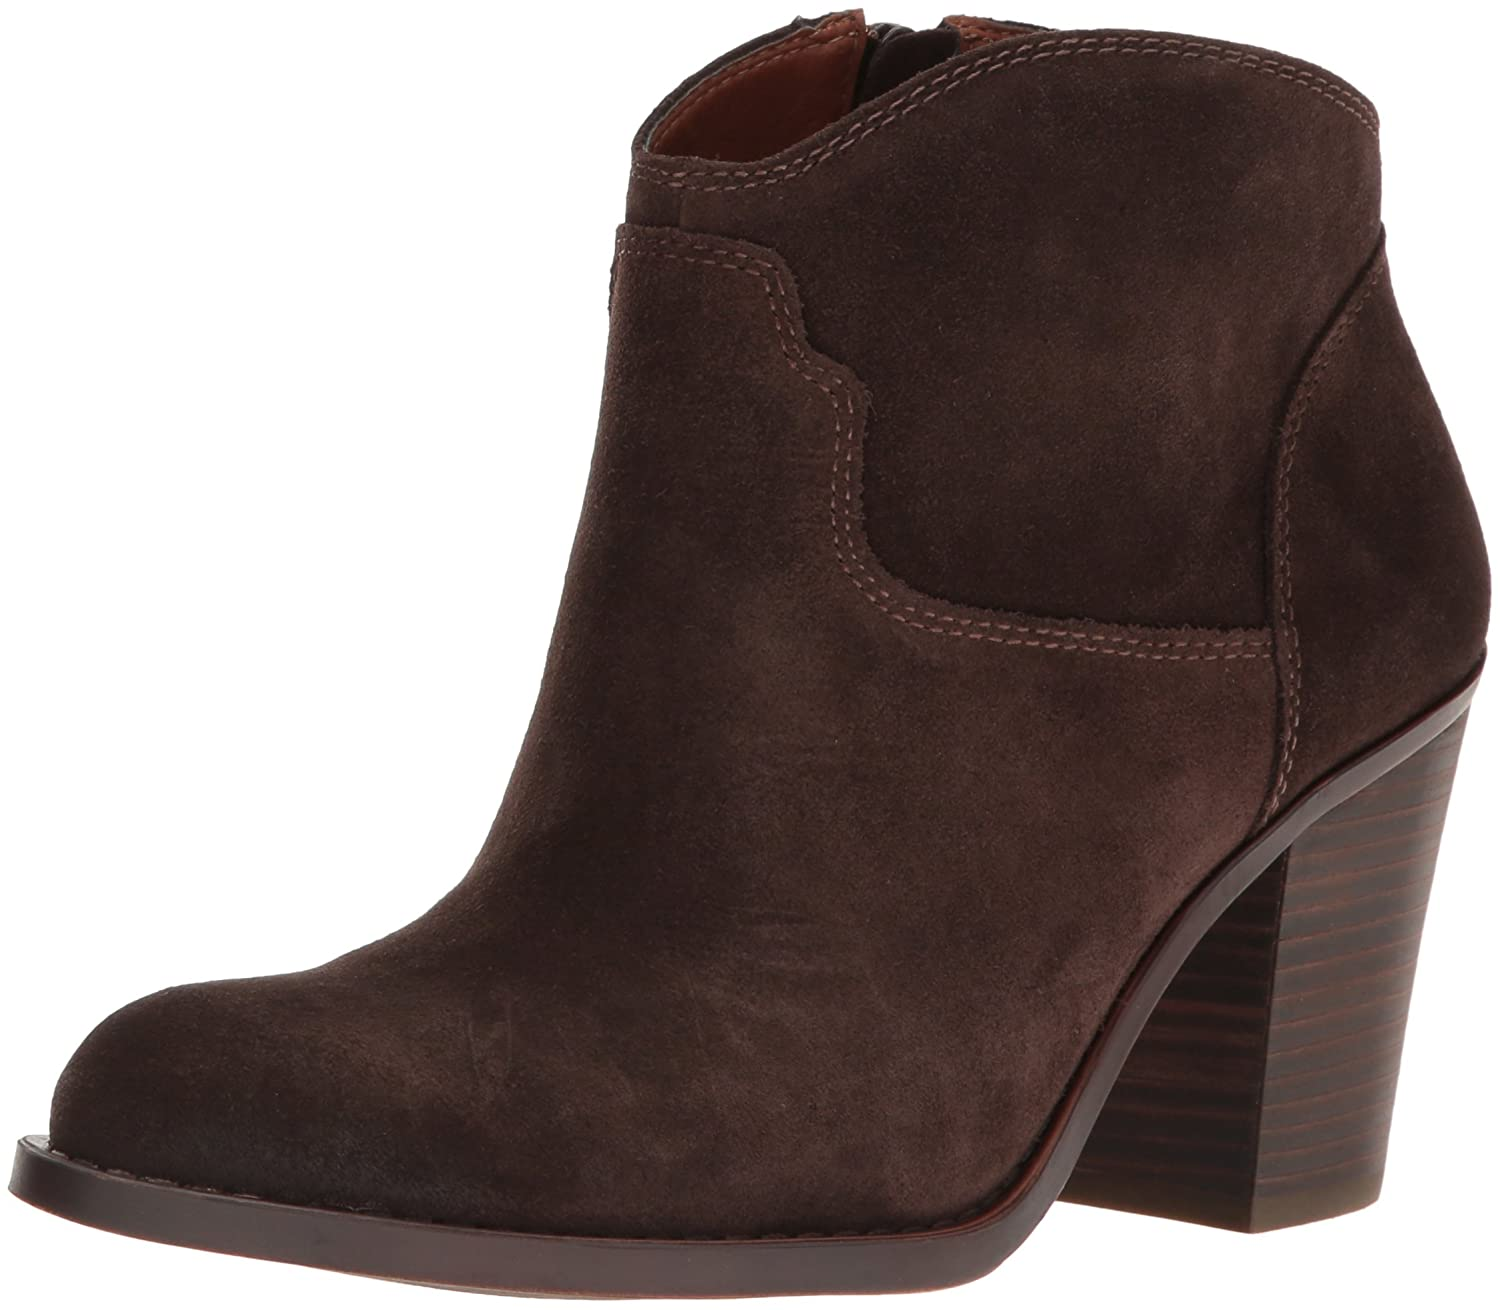 Lucky Brand Women's Eller Boot B01IQ65OJQ 11 B(M) US|Java